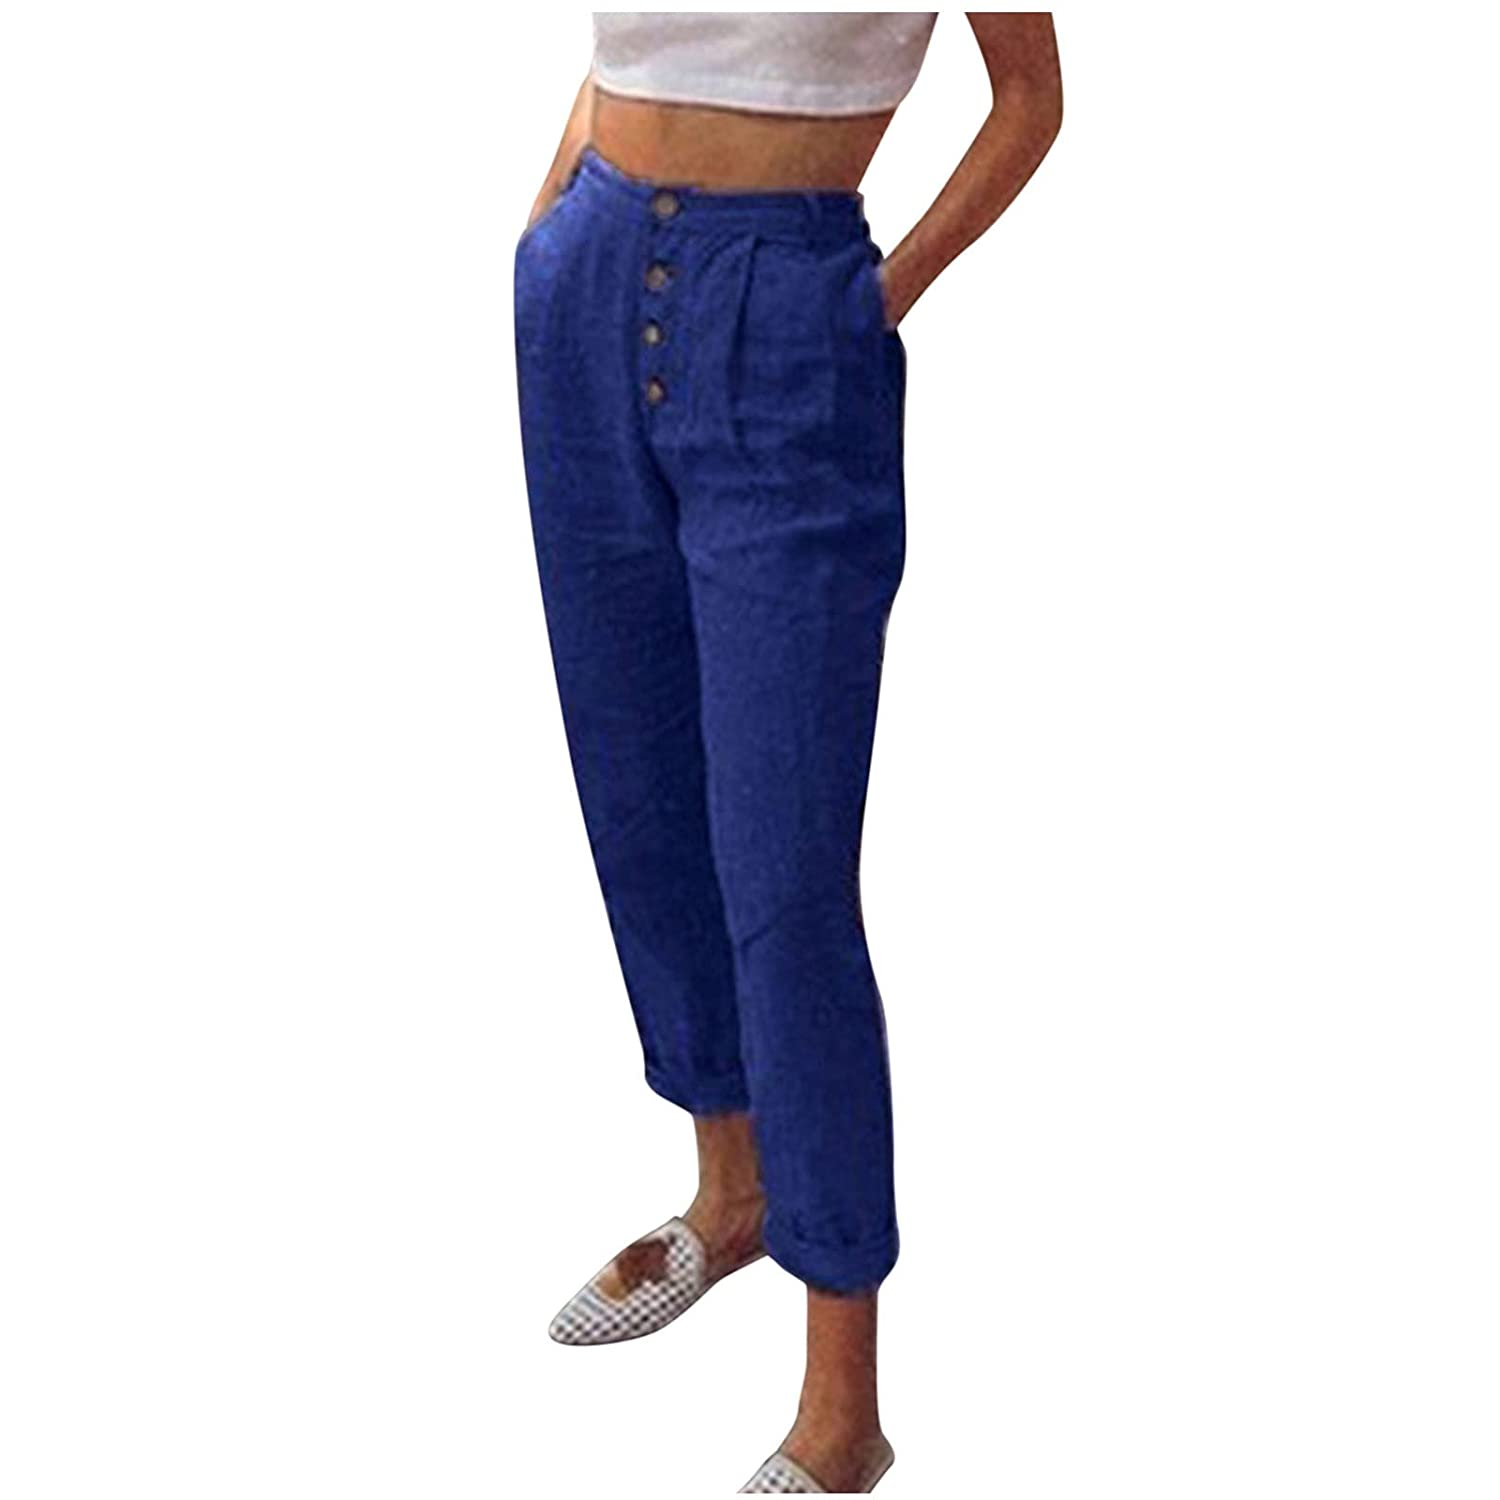 SANYEE Women's Cropped Paper Bag Waist Pants Paper Bag Pants High Waist with Pockets Tie Casual Cropped Trousers